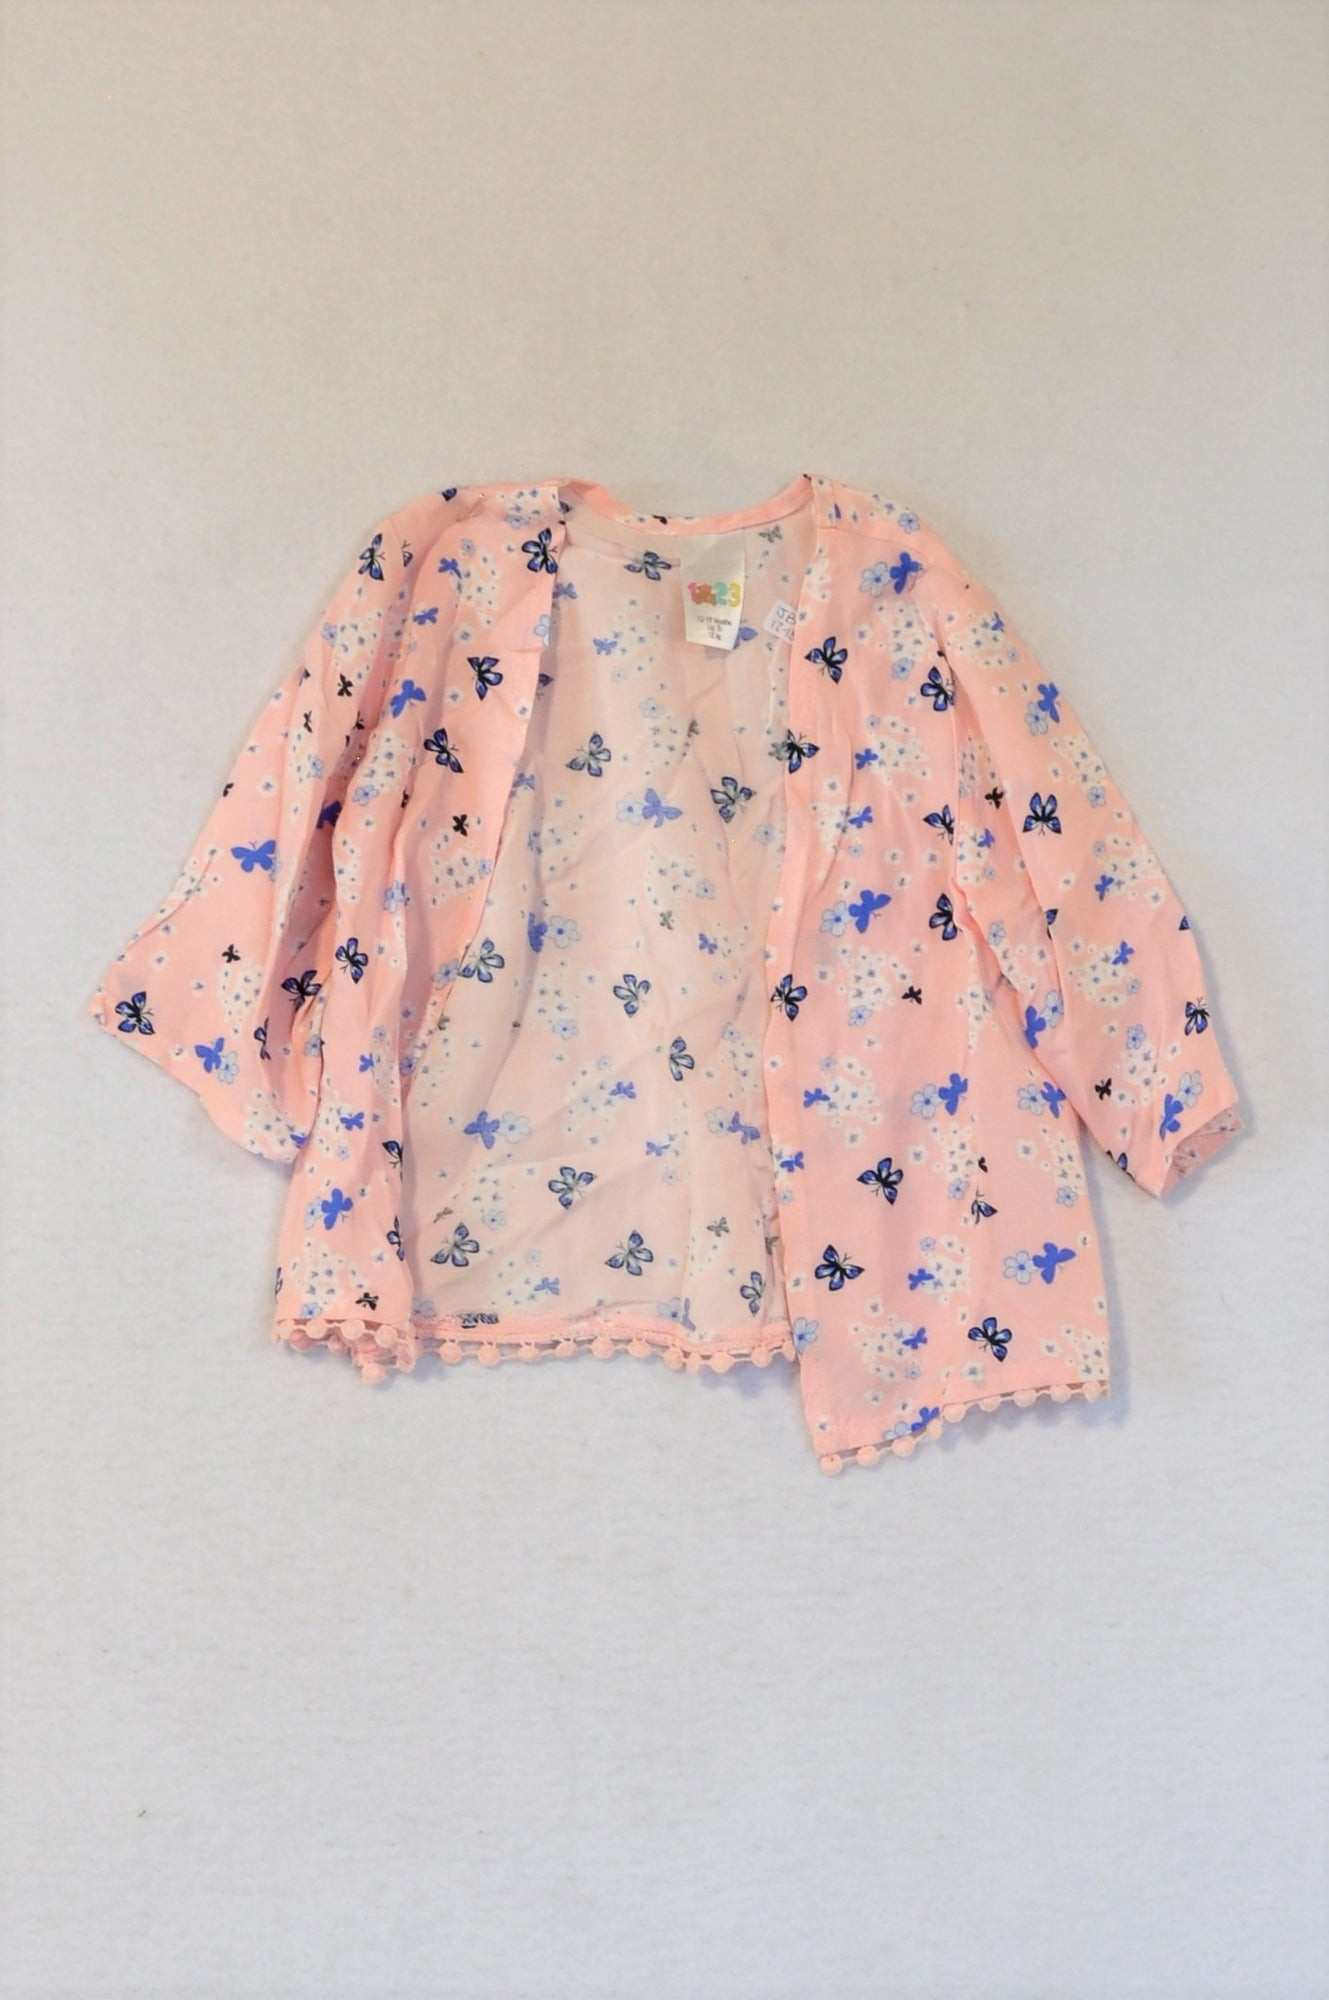 Edgars Light Pink & Blue Butterfly Kimono Jacket Girls 12-18 months